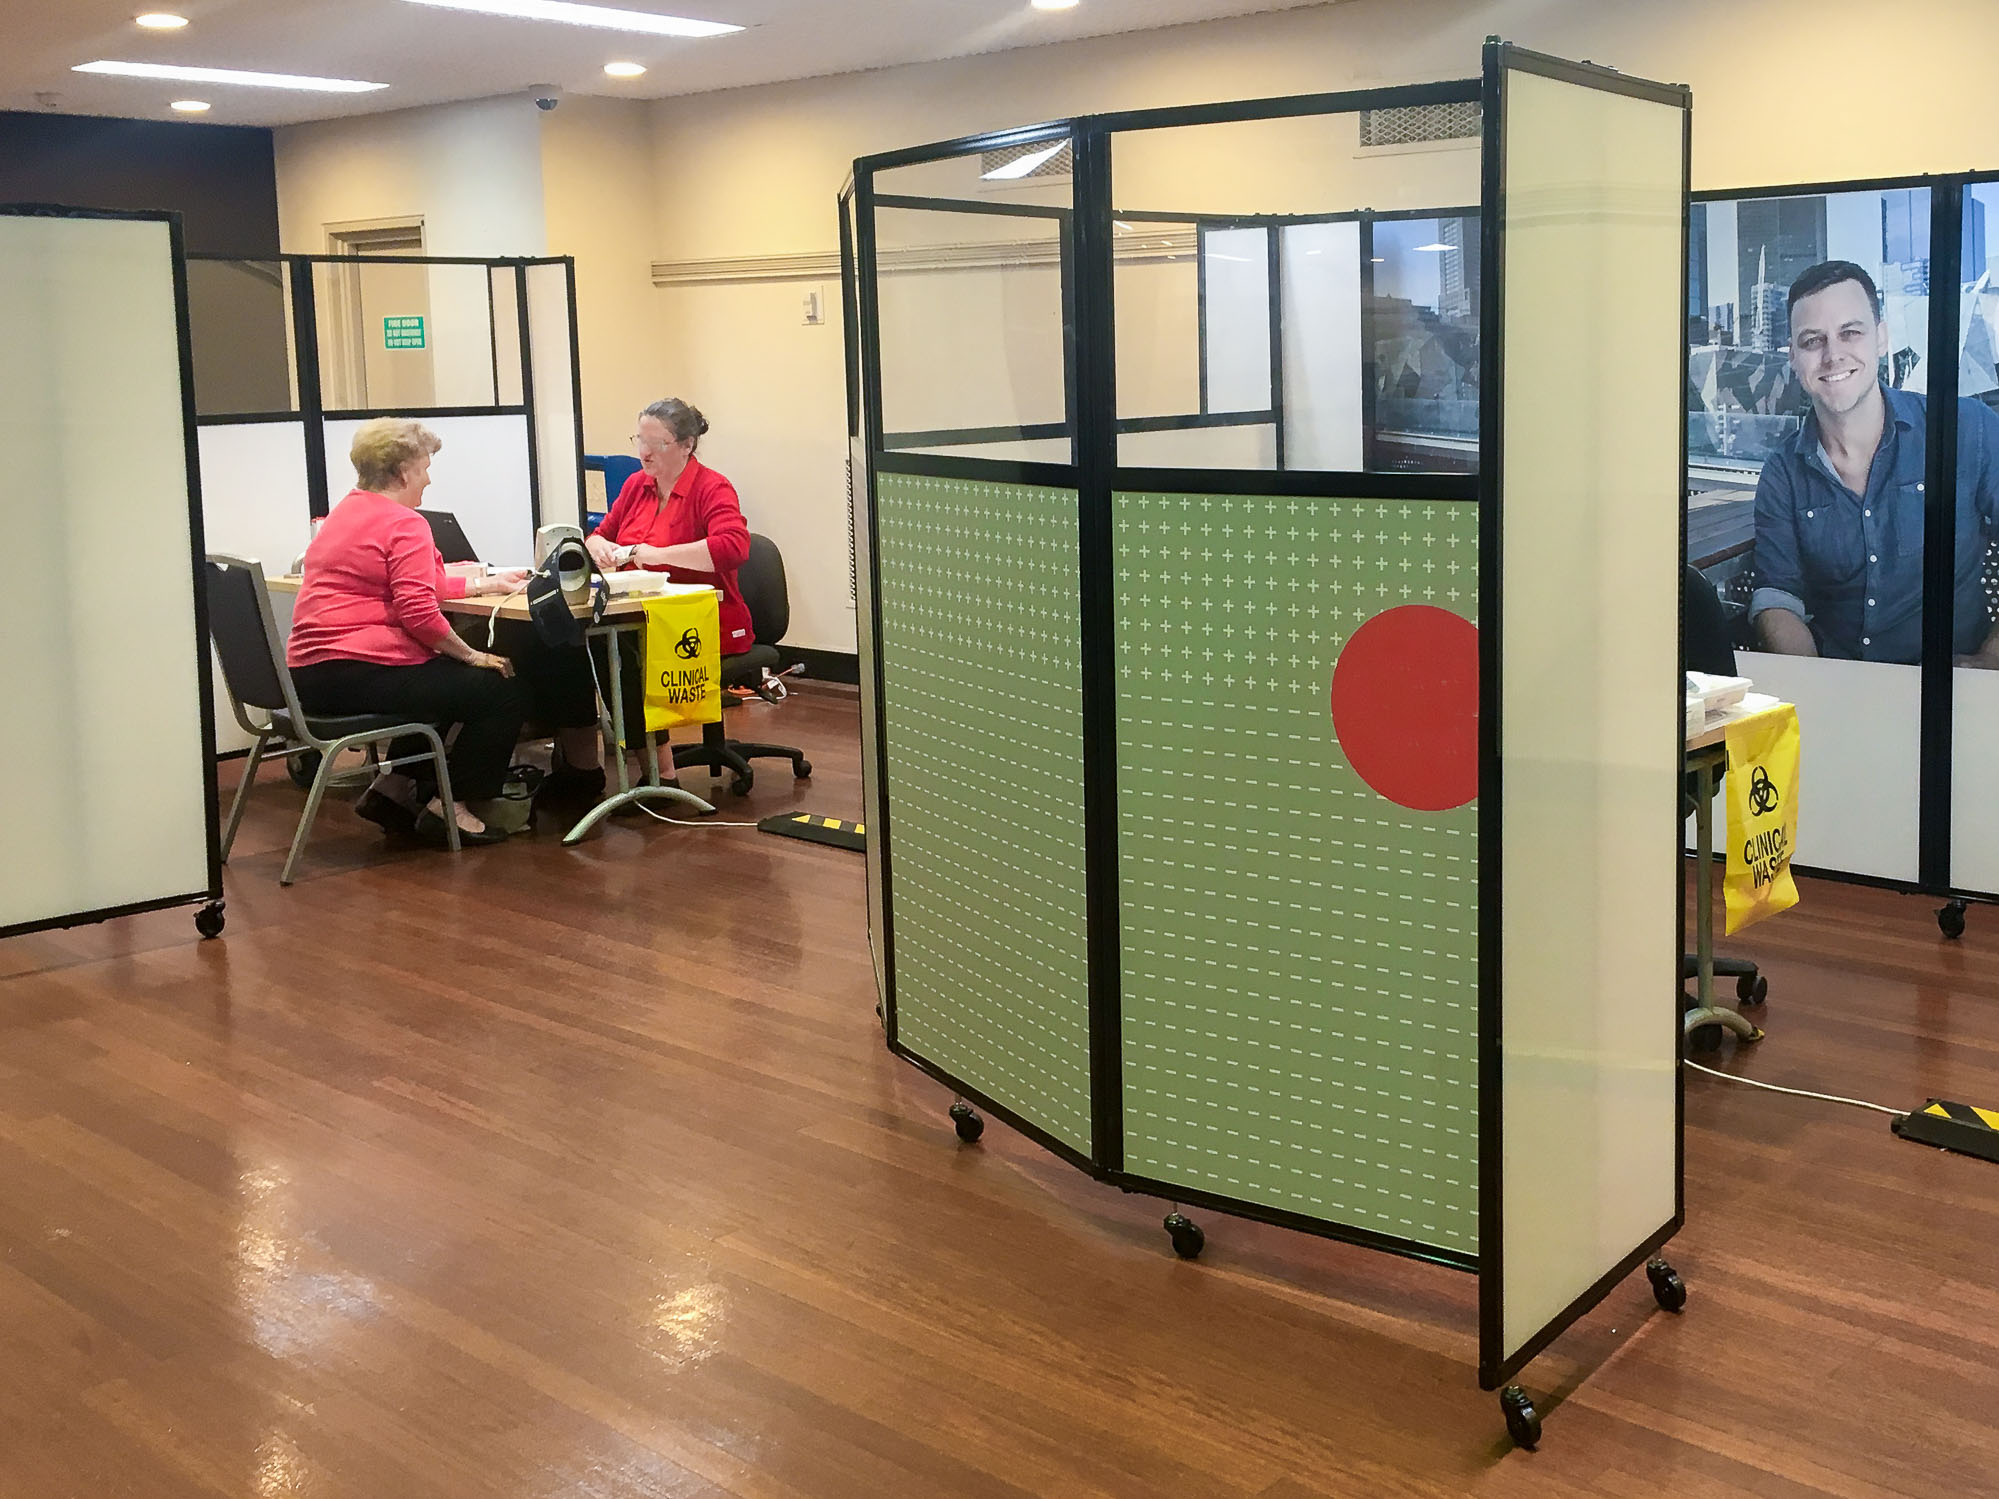 Create extra rooms when there's an influx of patients